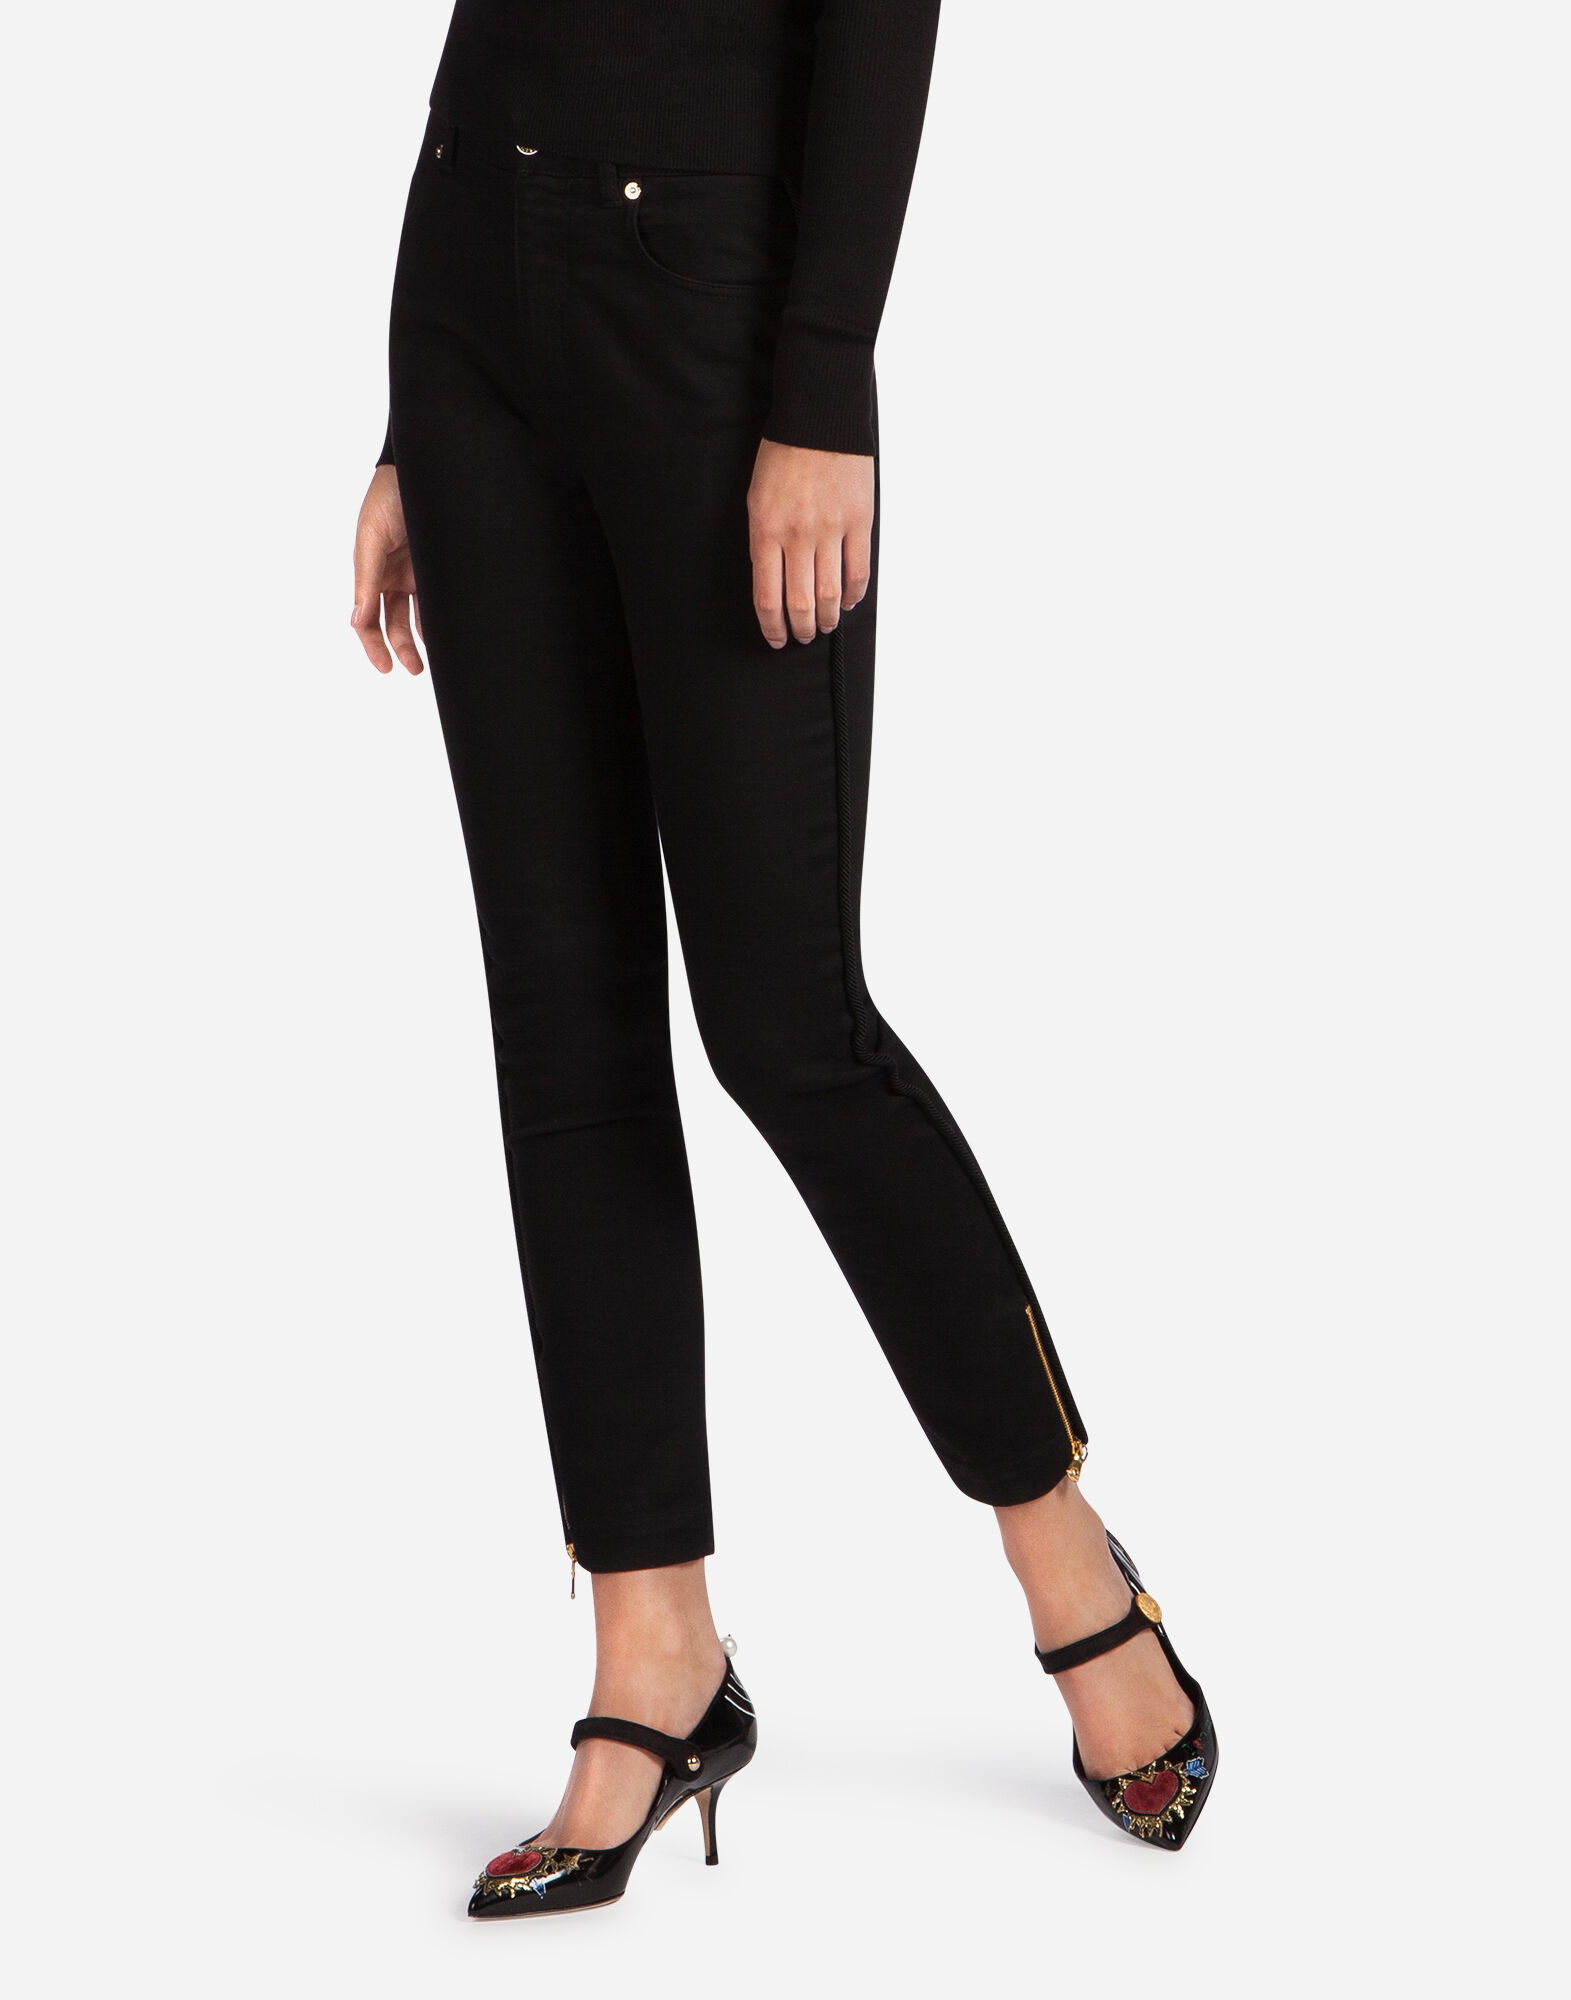 SKINNY JEANS WITH PIPING